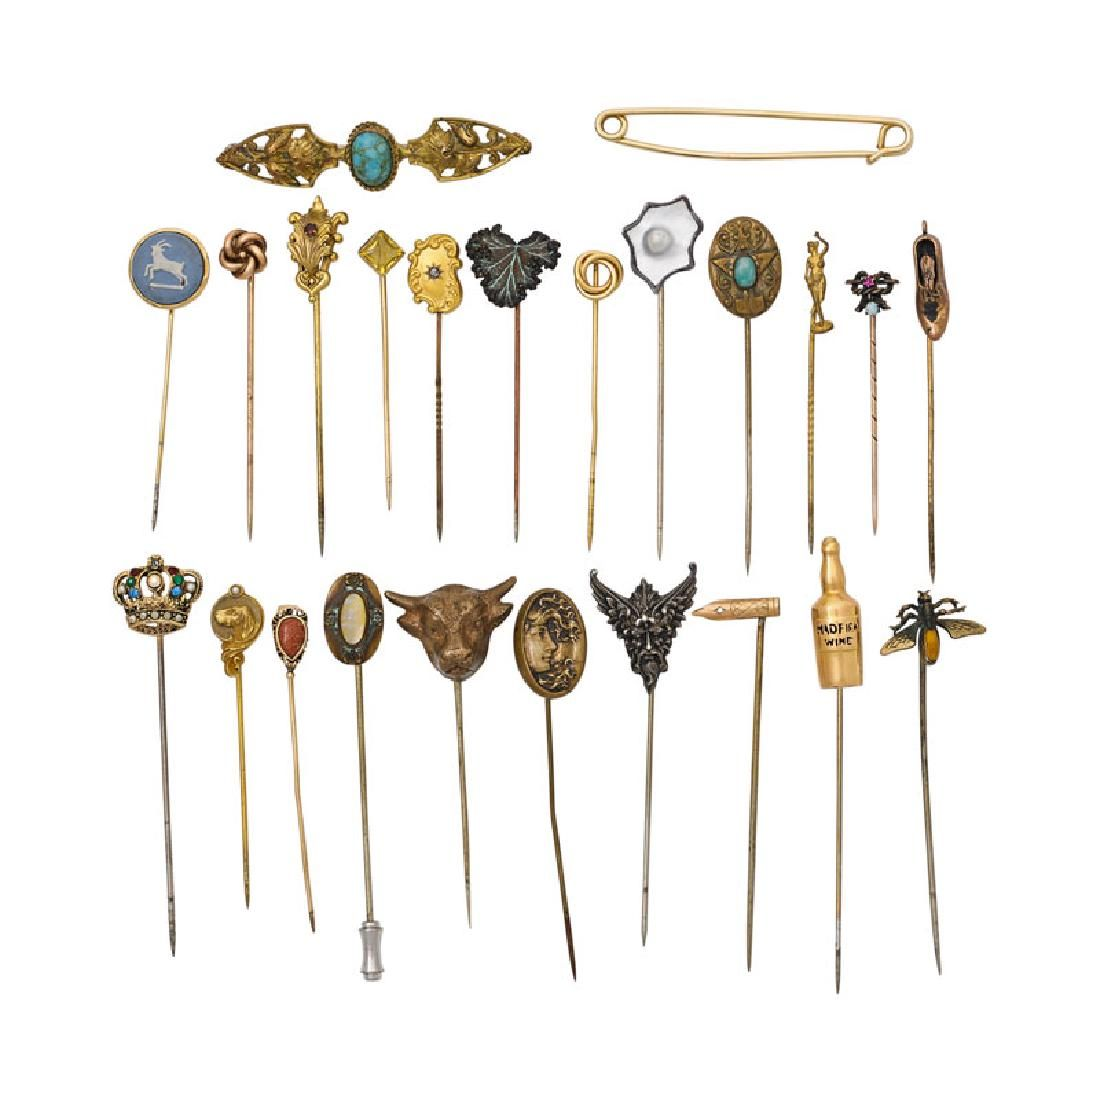 COLLECTION OF ANTIQUE STICKPINS OR BROOCHES